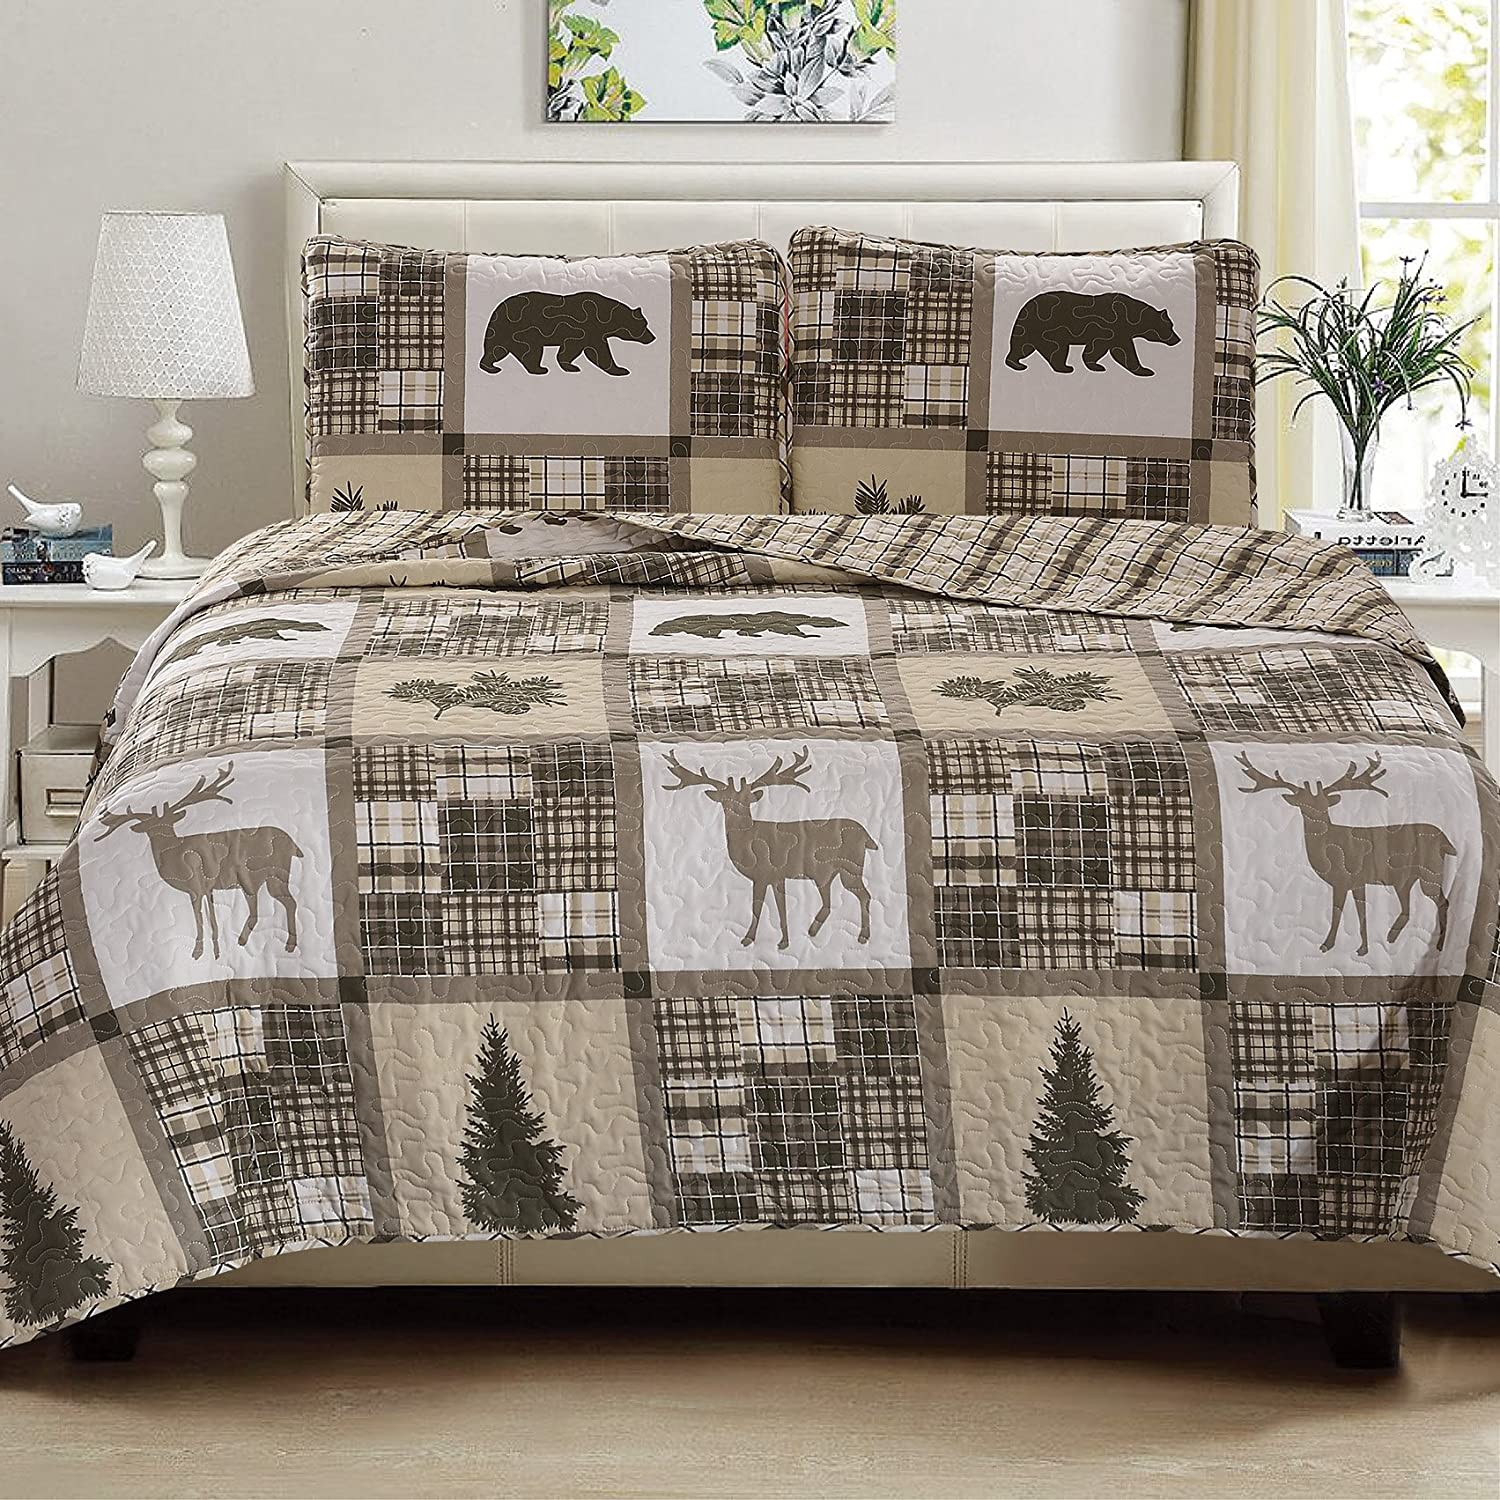 Great Bay Home 3-Piece Lodge Quilt Set with Shams. Durable Cabin Bedspread and Shams with Rustic Printed Pattern